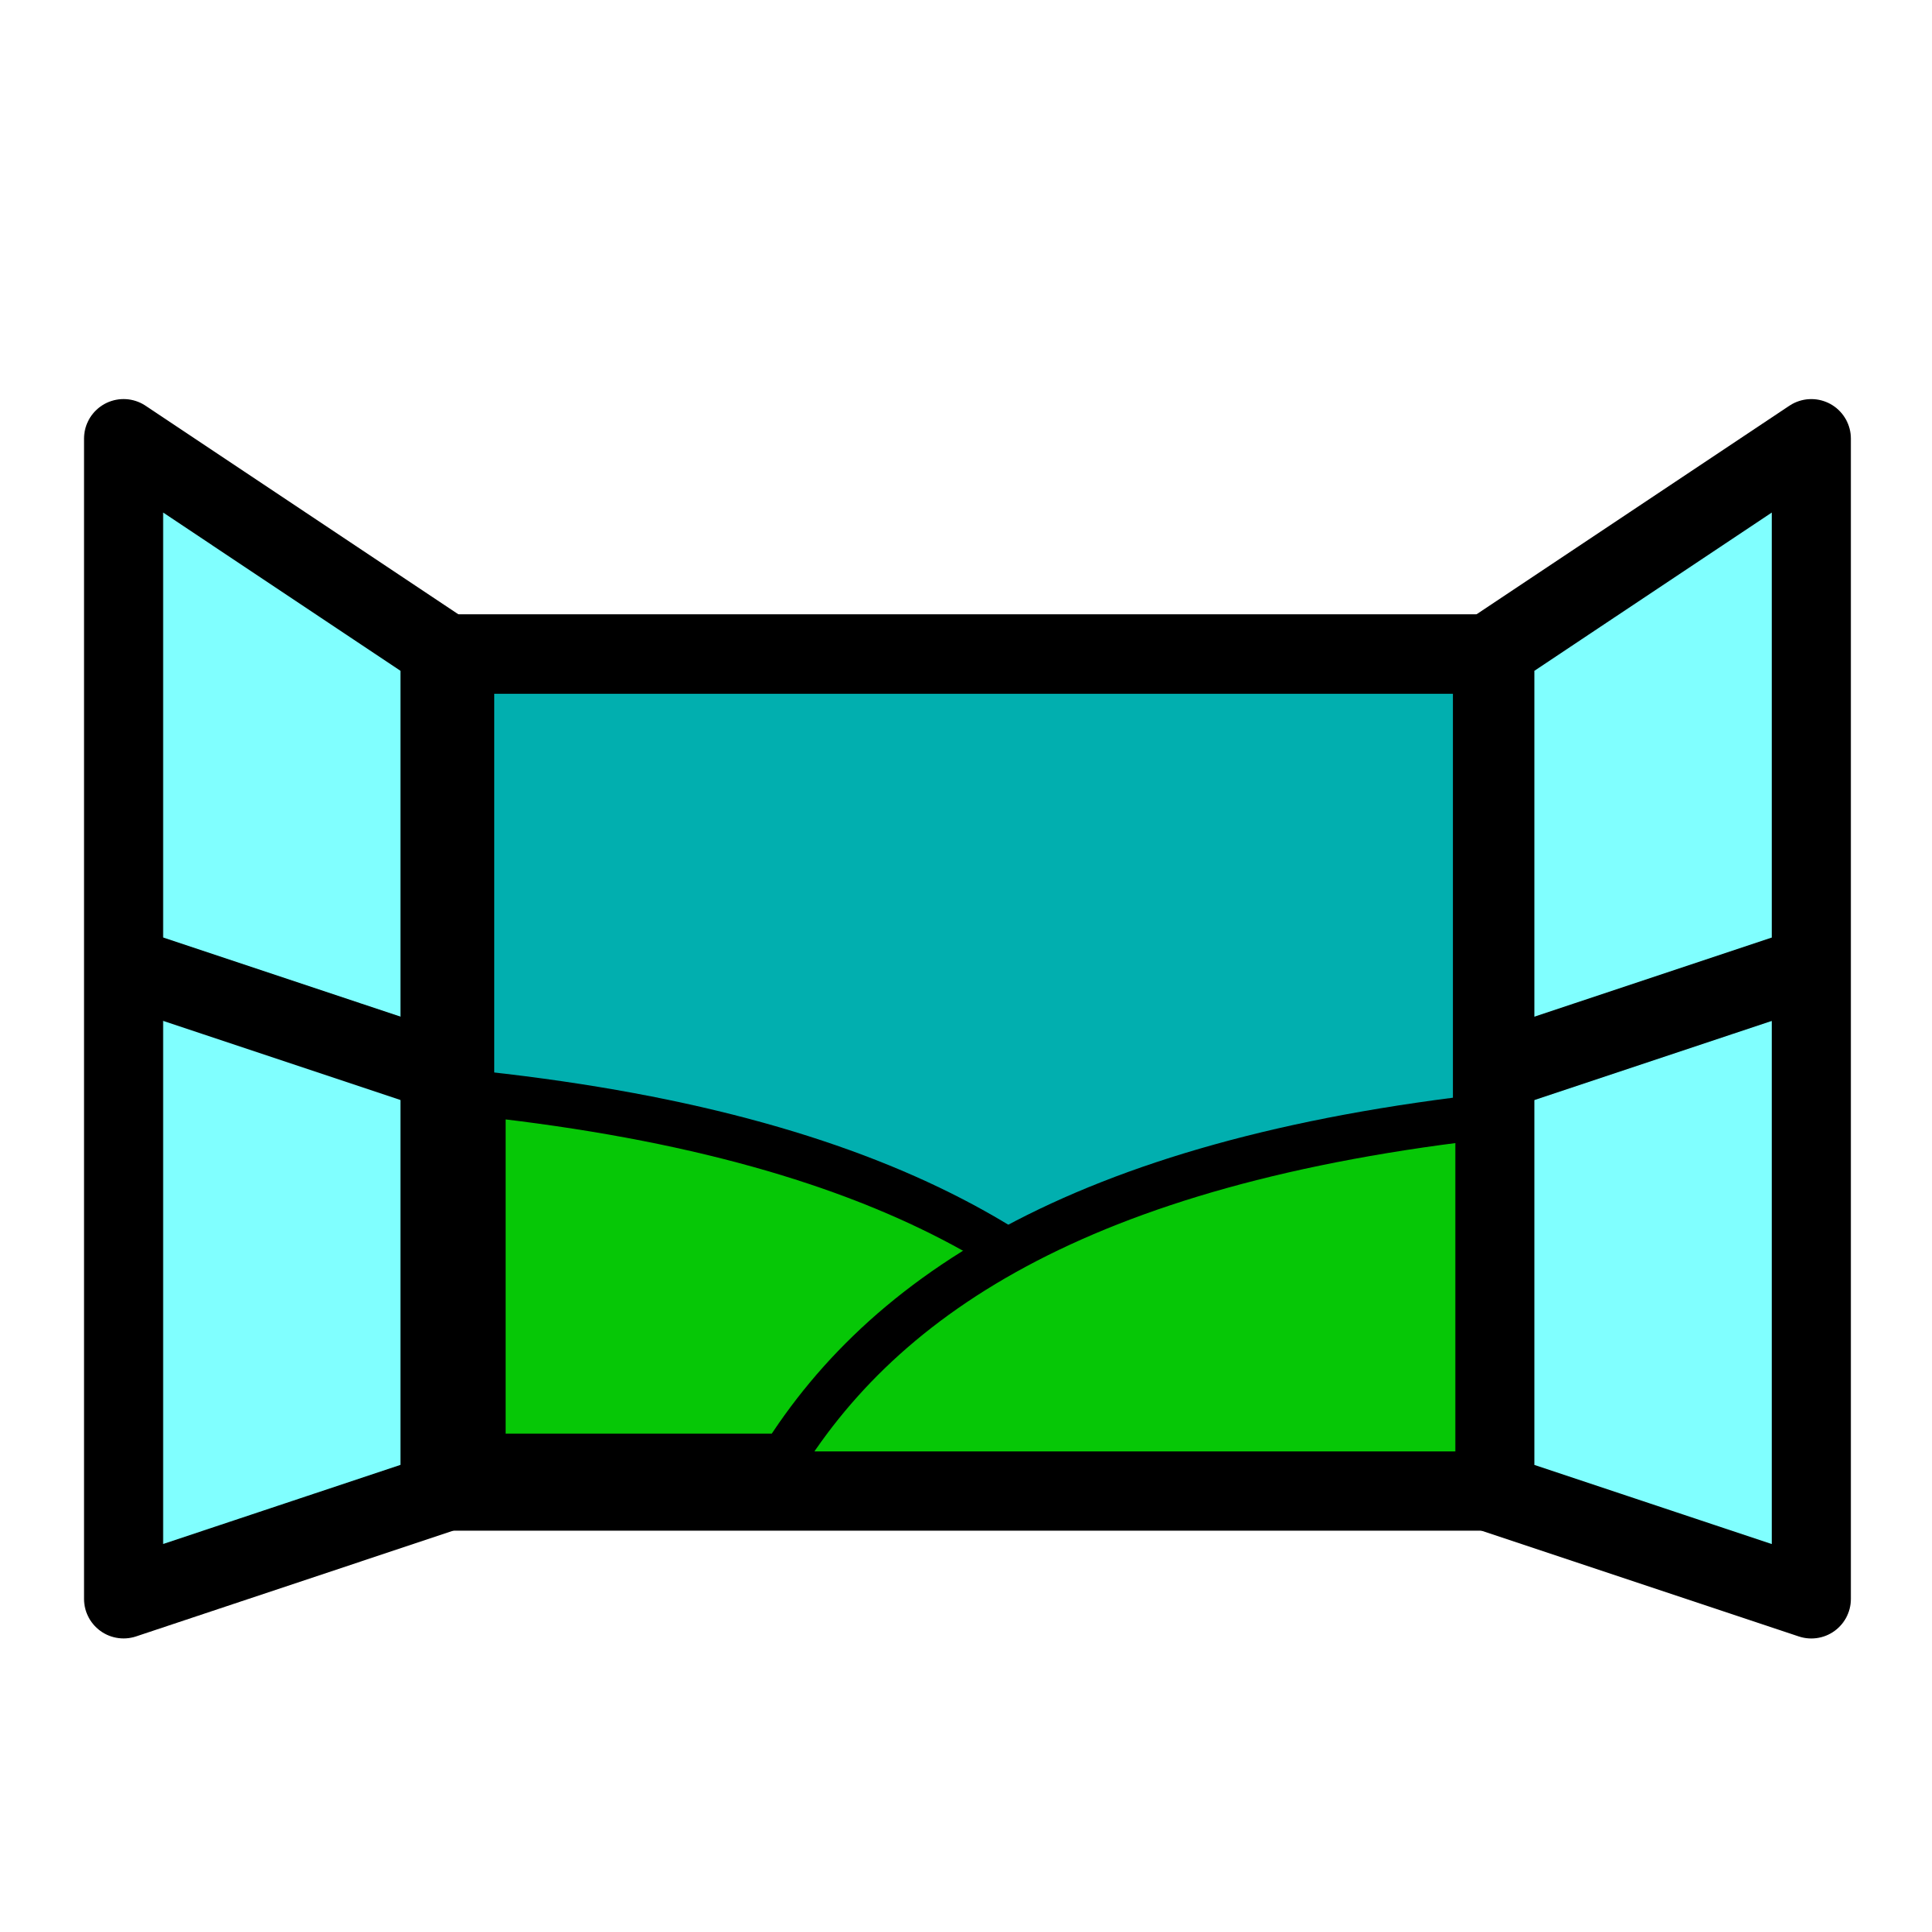 Window icon by pitr